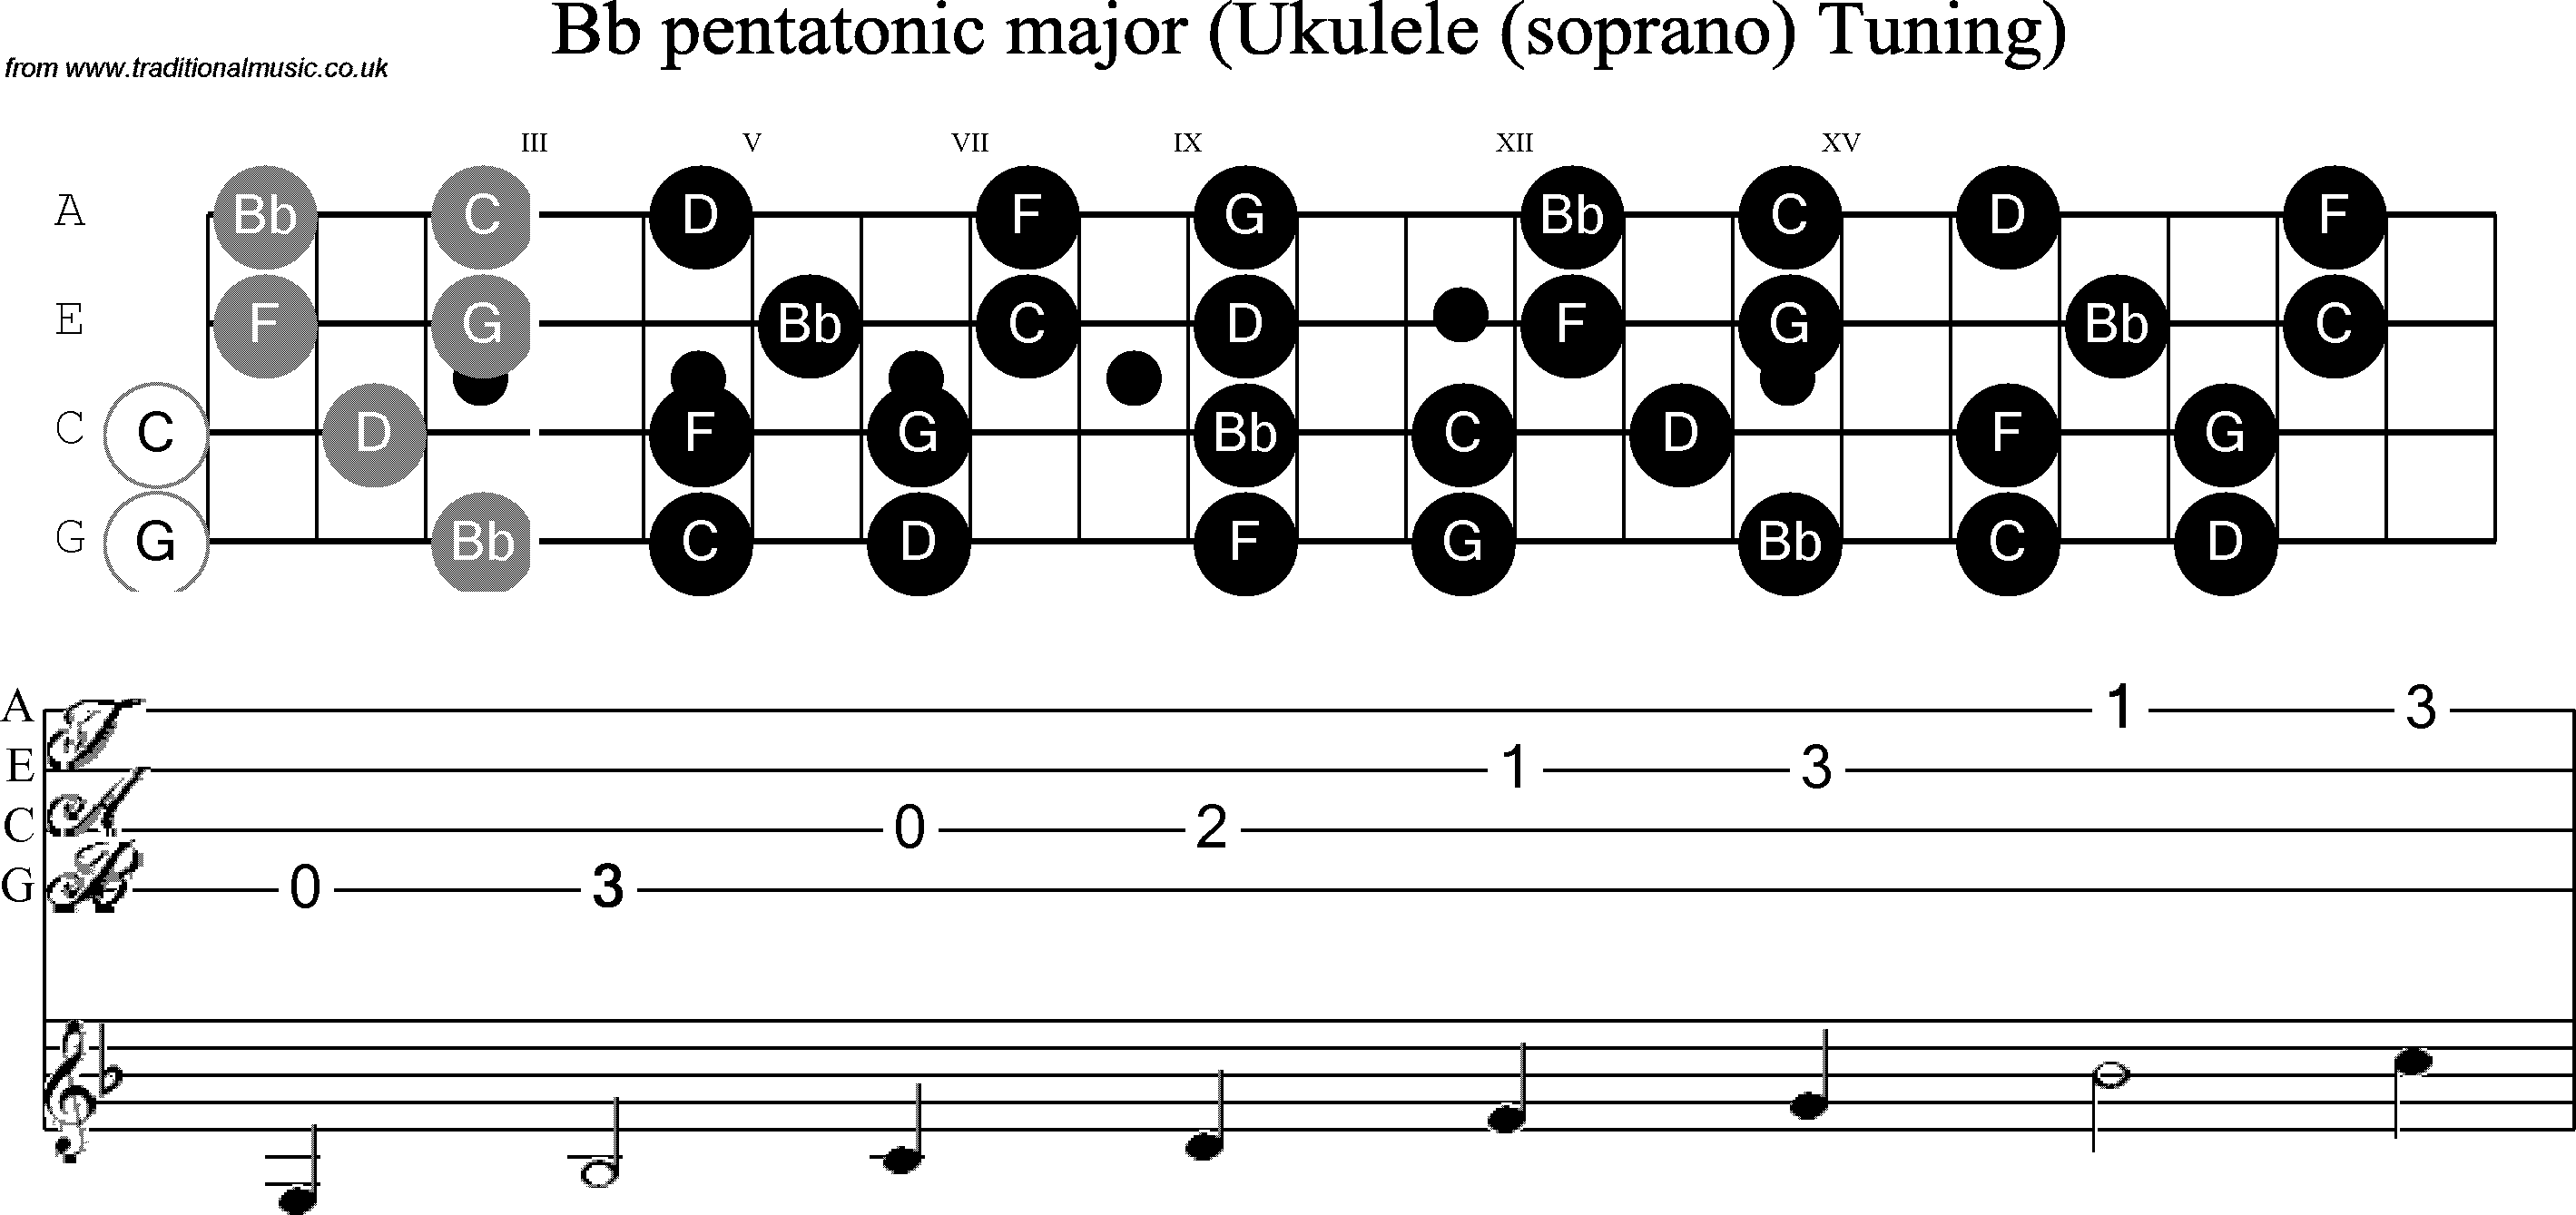 Ukulelediagram Nice Ukulele Diagram Pictures Mel Bay S Chords Neck Notes